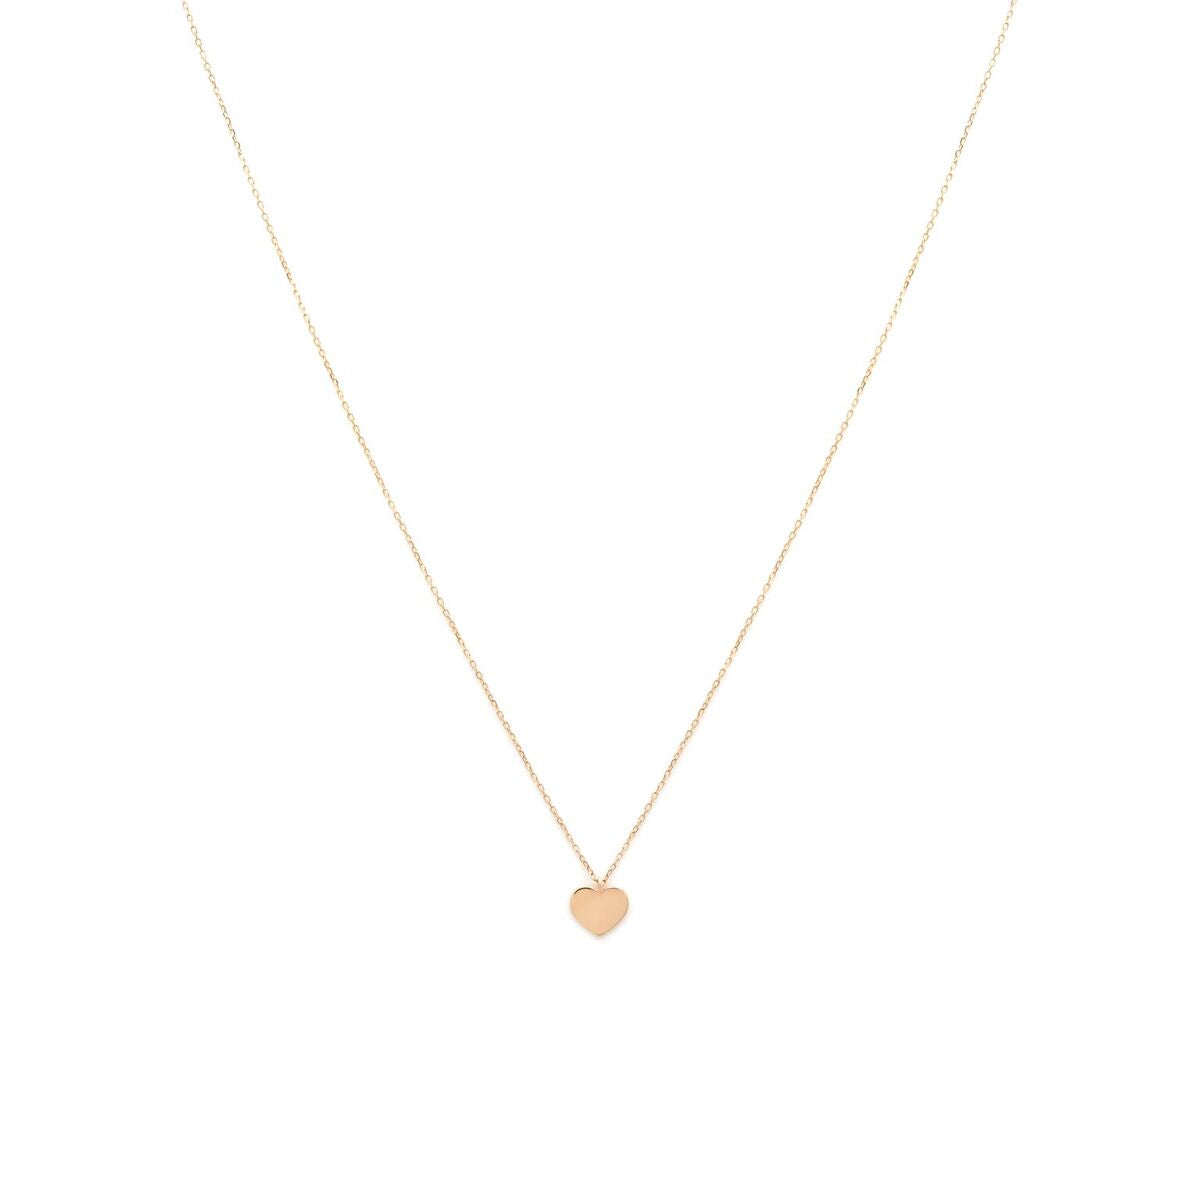 Modern Heart Necklace - 14k Solid Gold